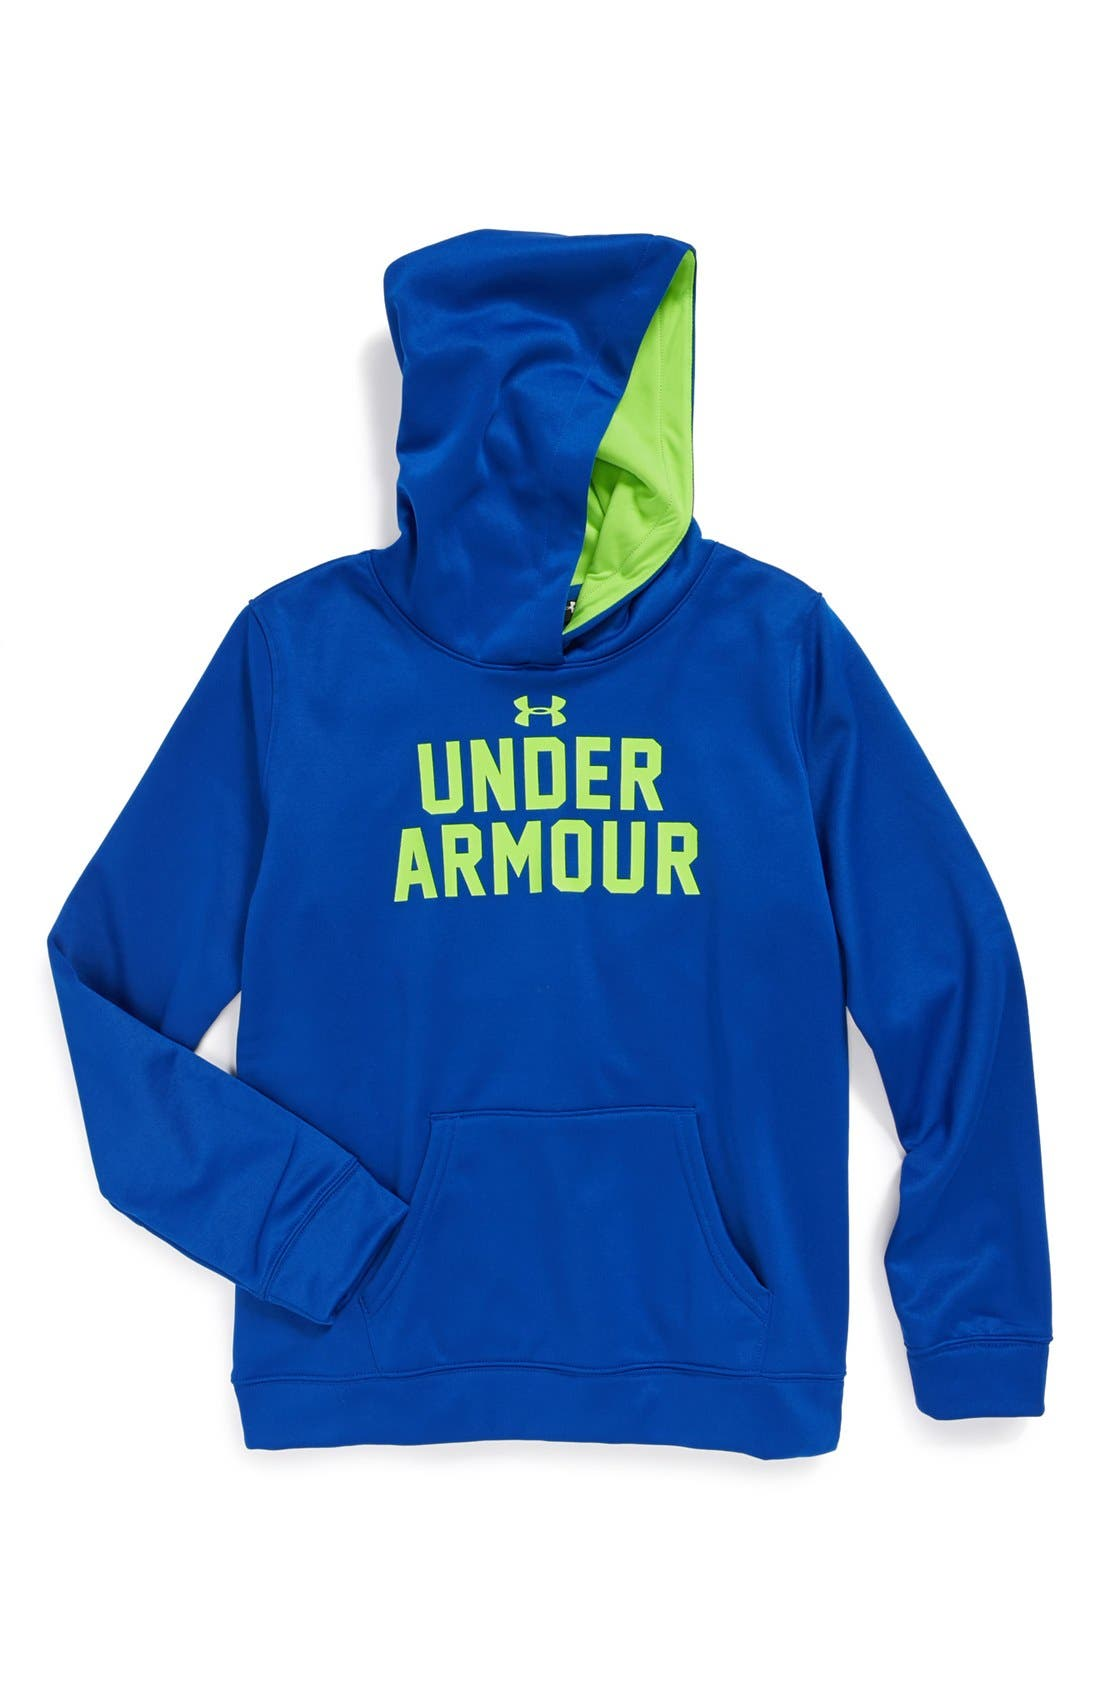 Alternate Image 1 Selected - Under Armour 'Battle' ColdGear® Hoodie (Big Girls)